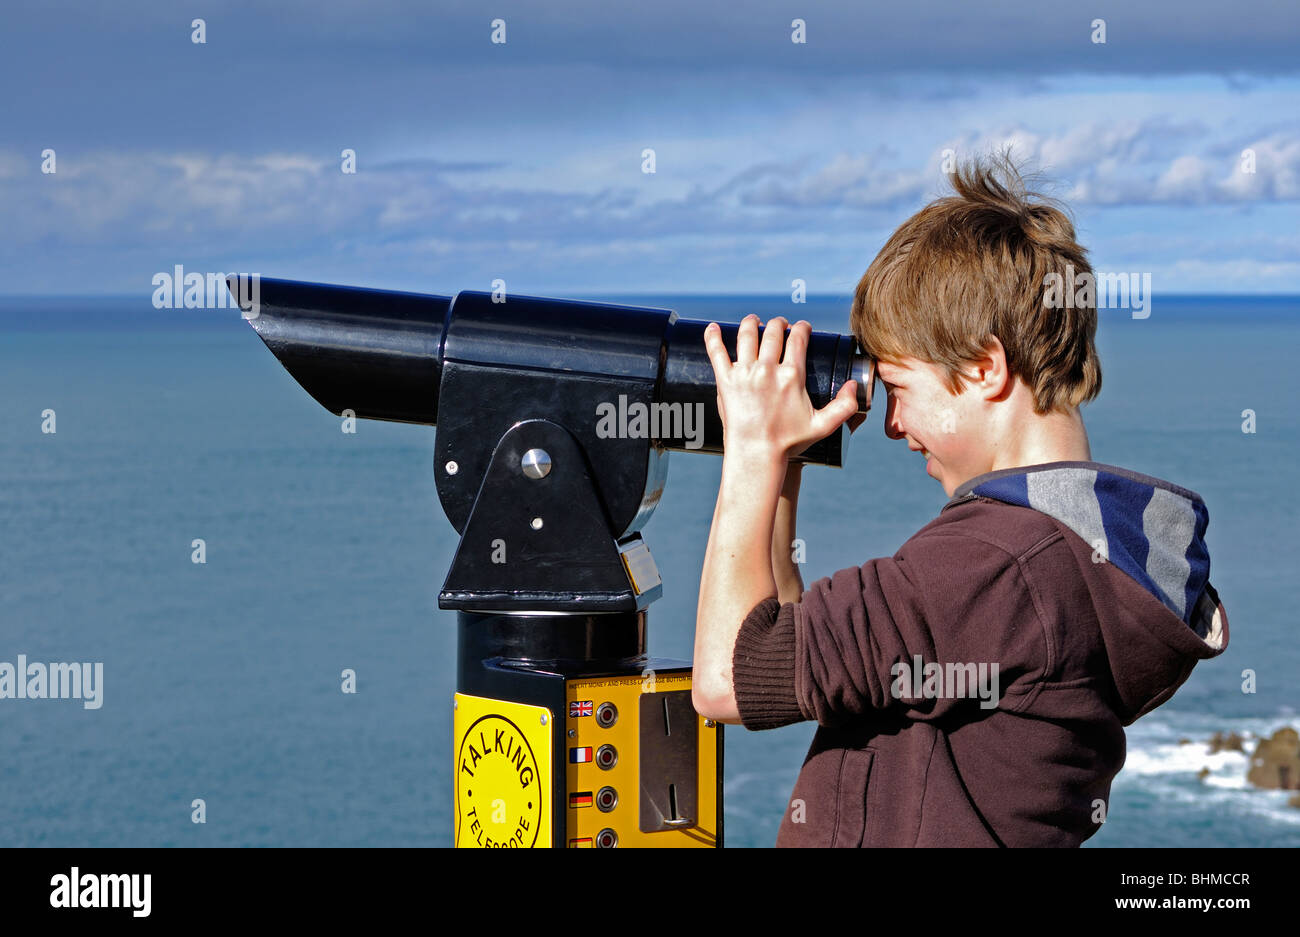 a young boy looking through a telescope at lands end in cornwall, uk - Stock Image